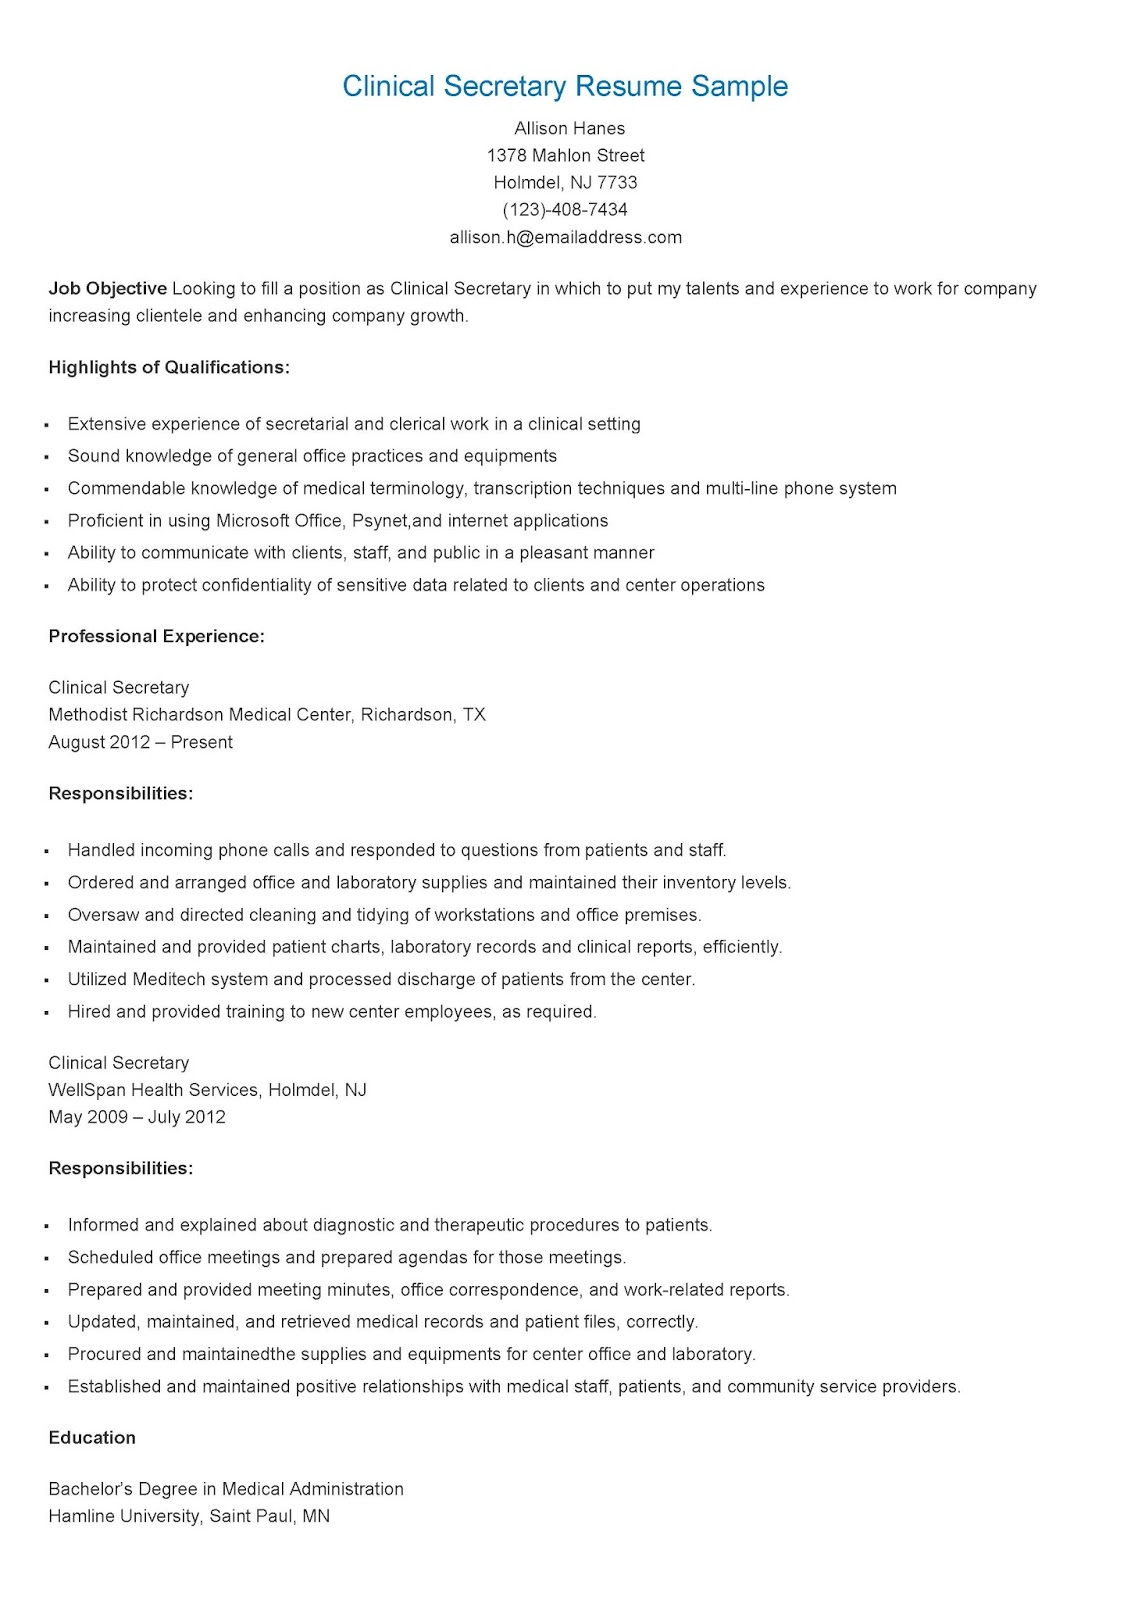 resume samples clinical secretary resume sample